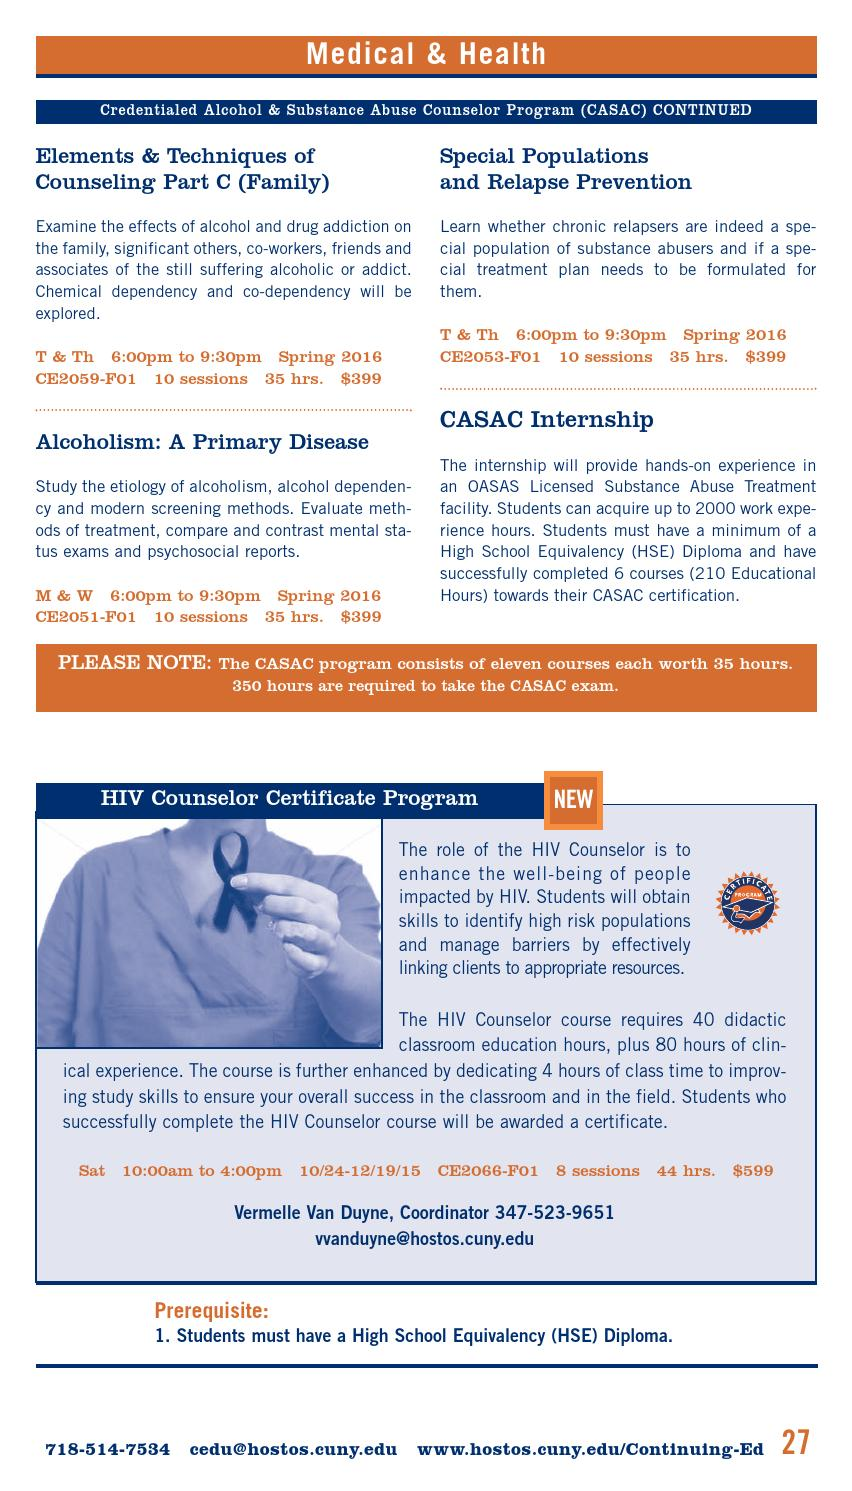 Fall 2015 Continuing Education Catalog By Hostos Community College